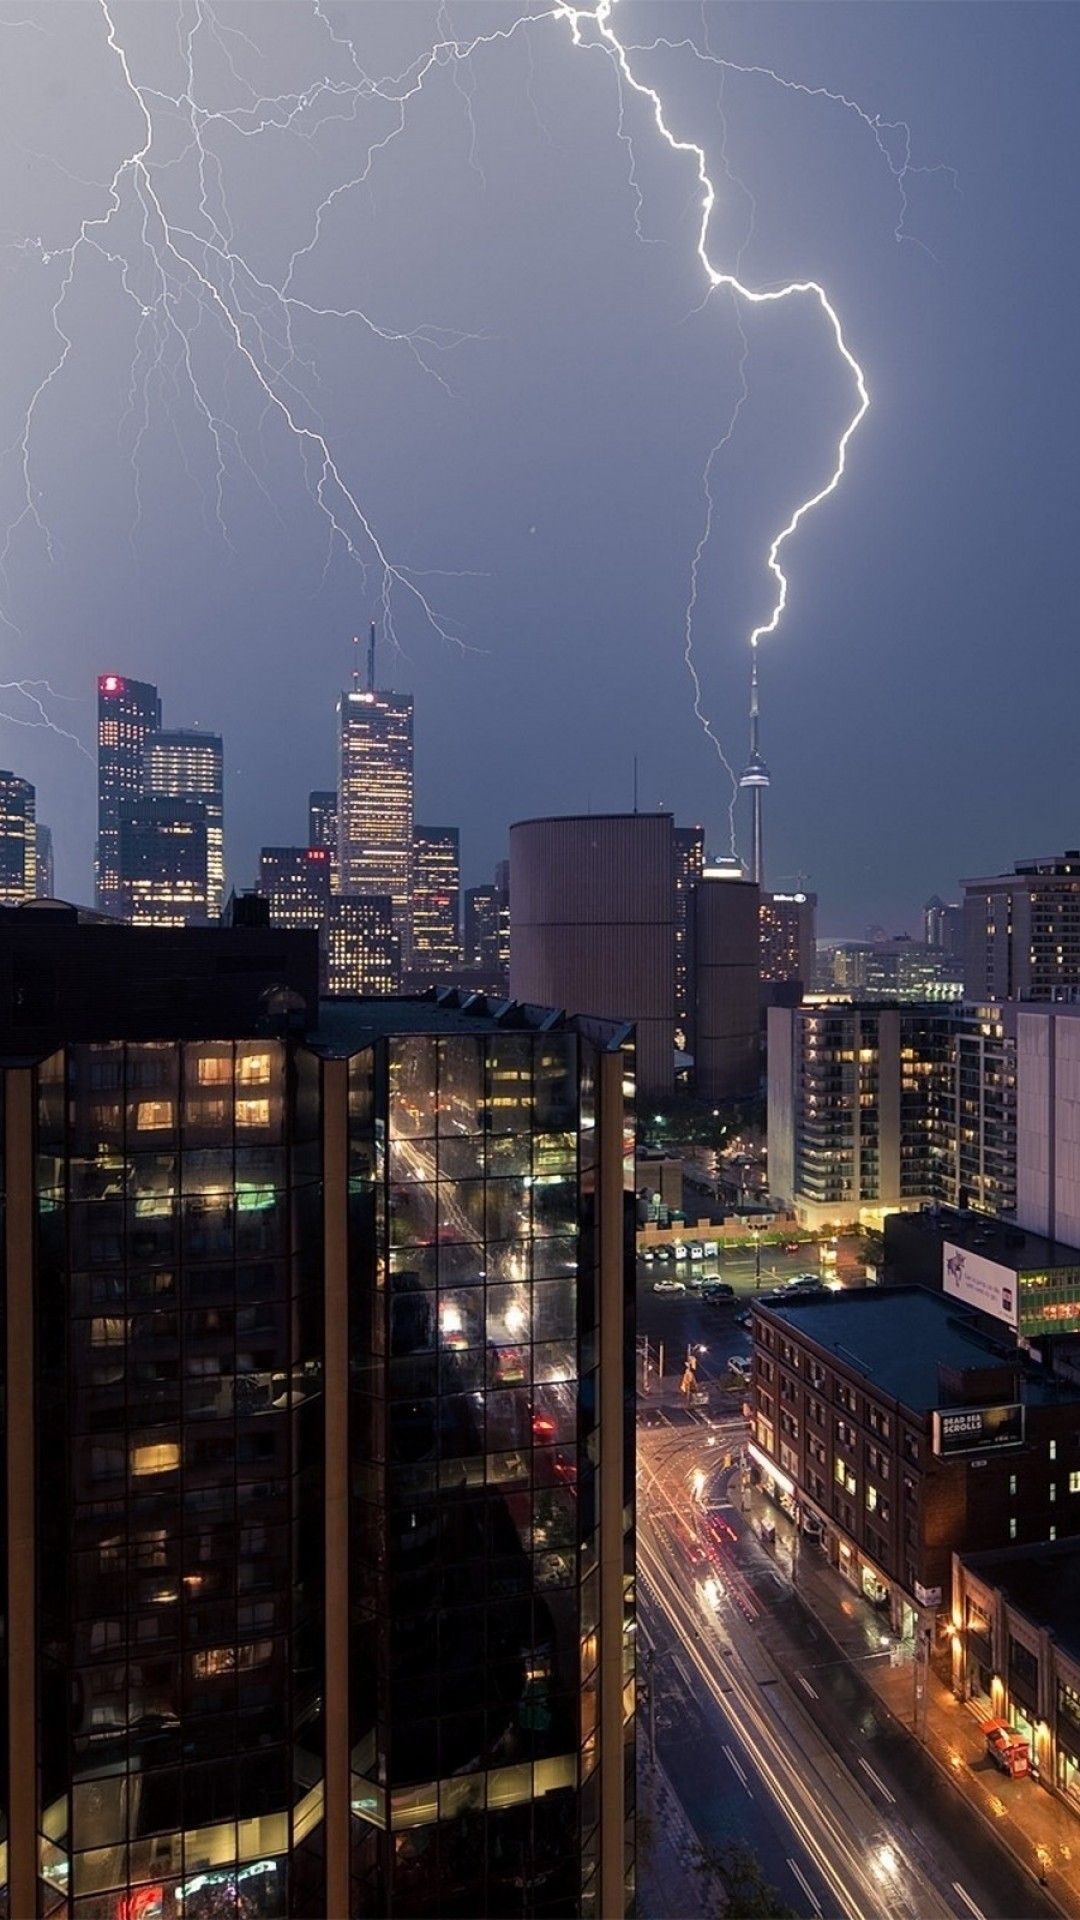 Lightning In Cities Pictures